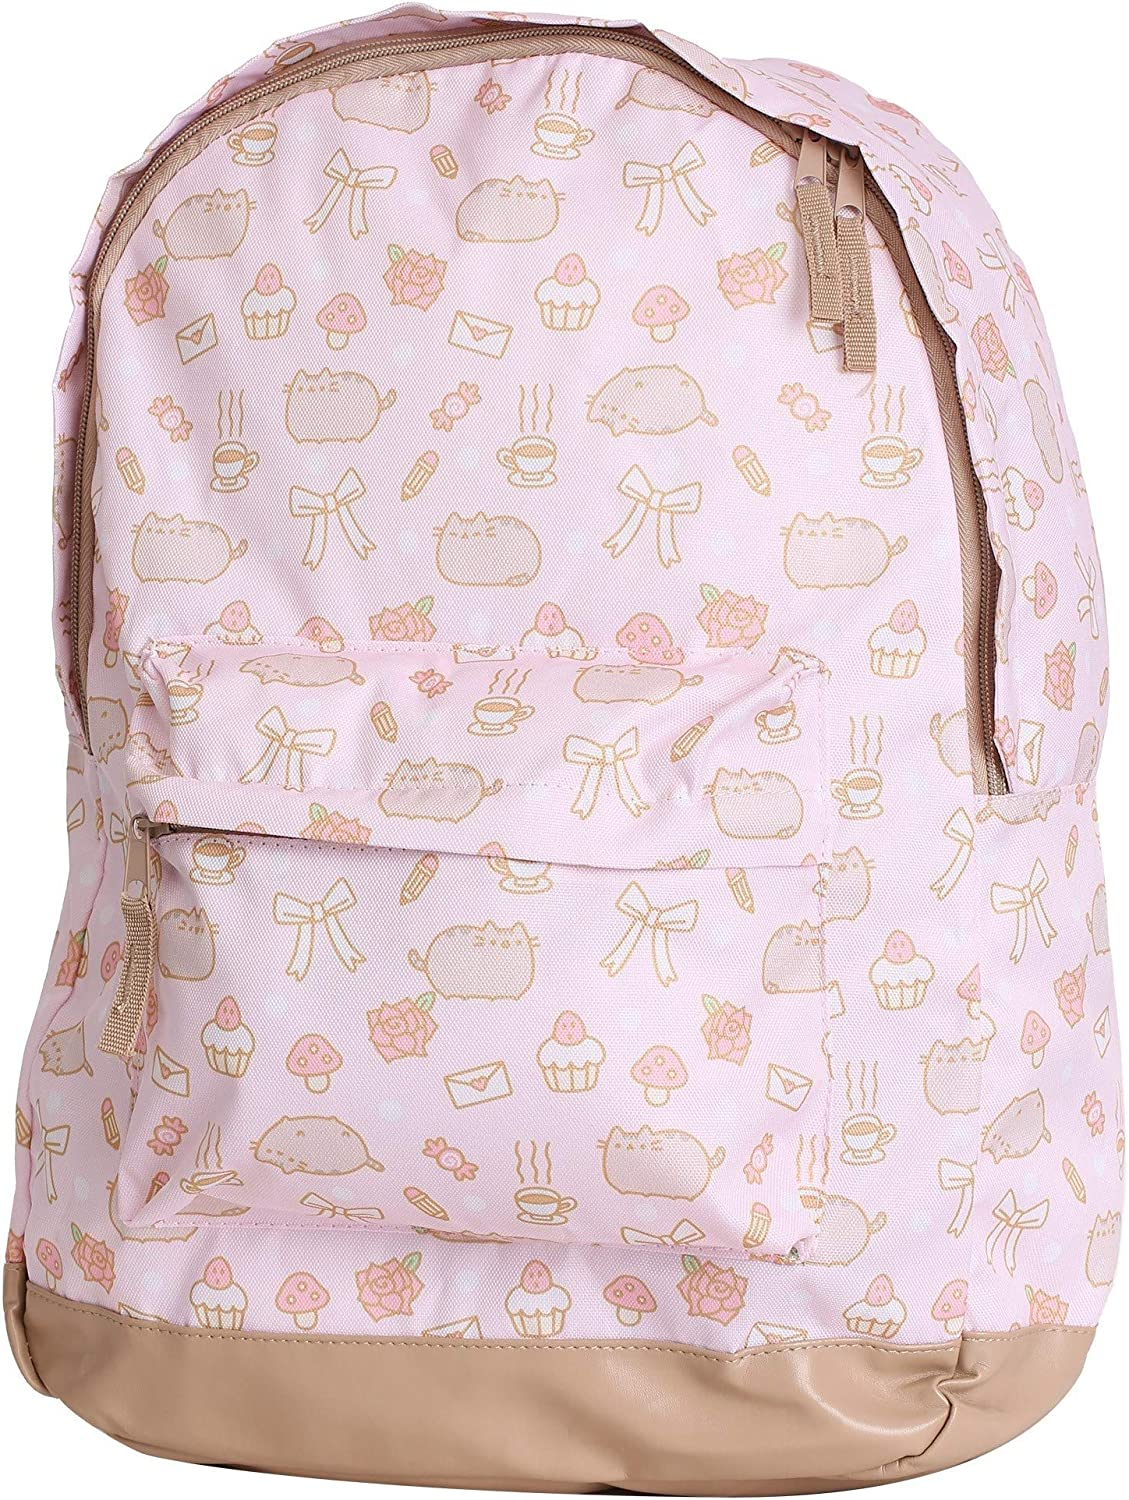 All Over Print Pusheen Pink Backpack Standard